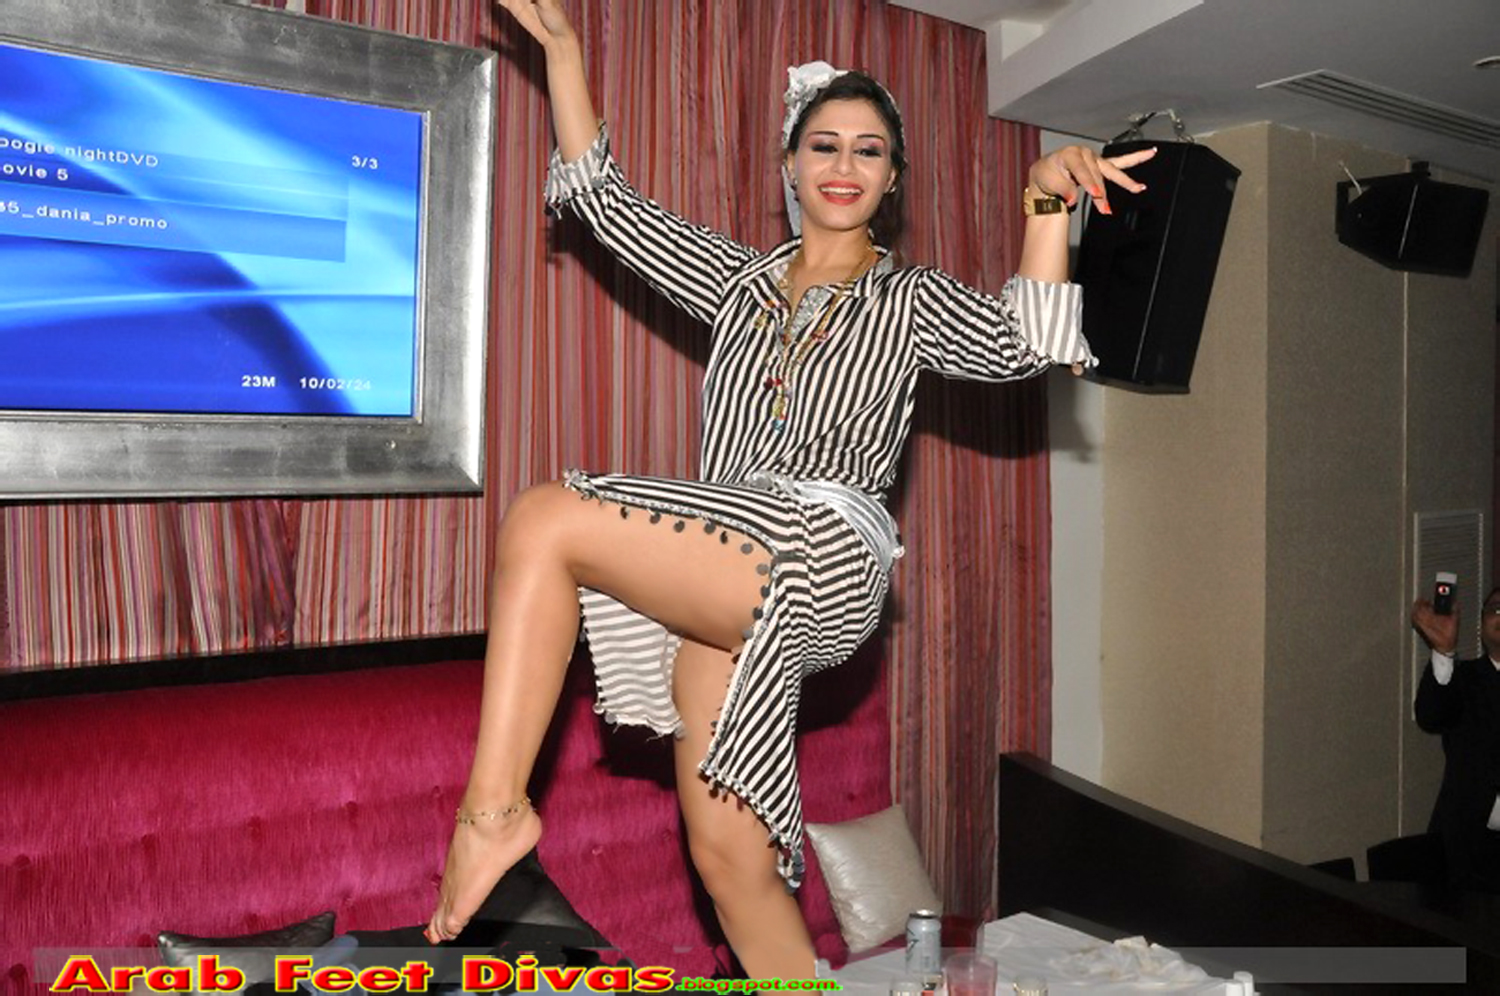 صور اقدام نانسي http://arabfeetdivas.blogspot.com/2013/03/blog-post.html